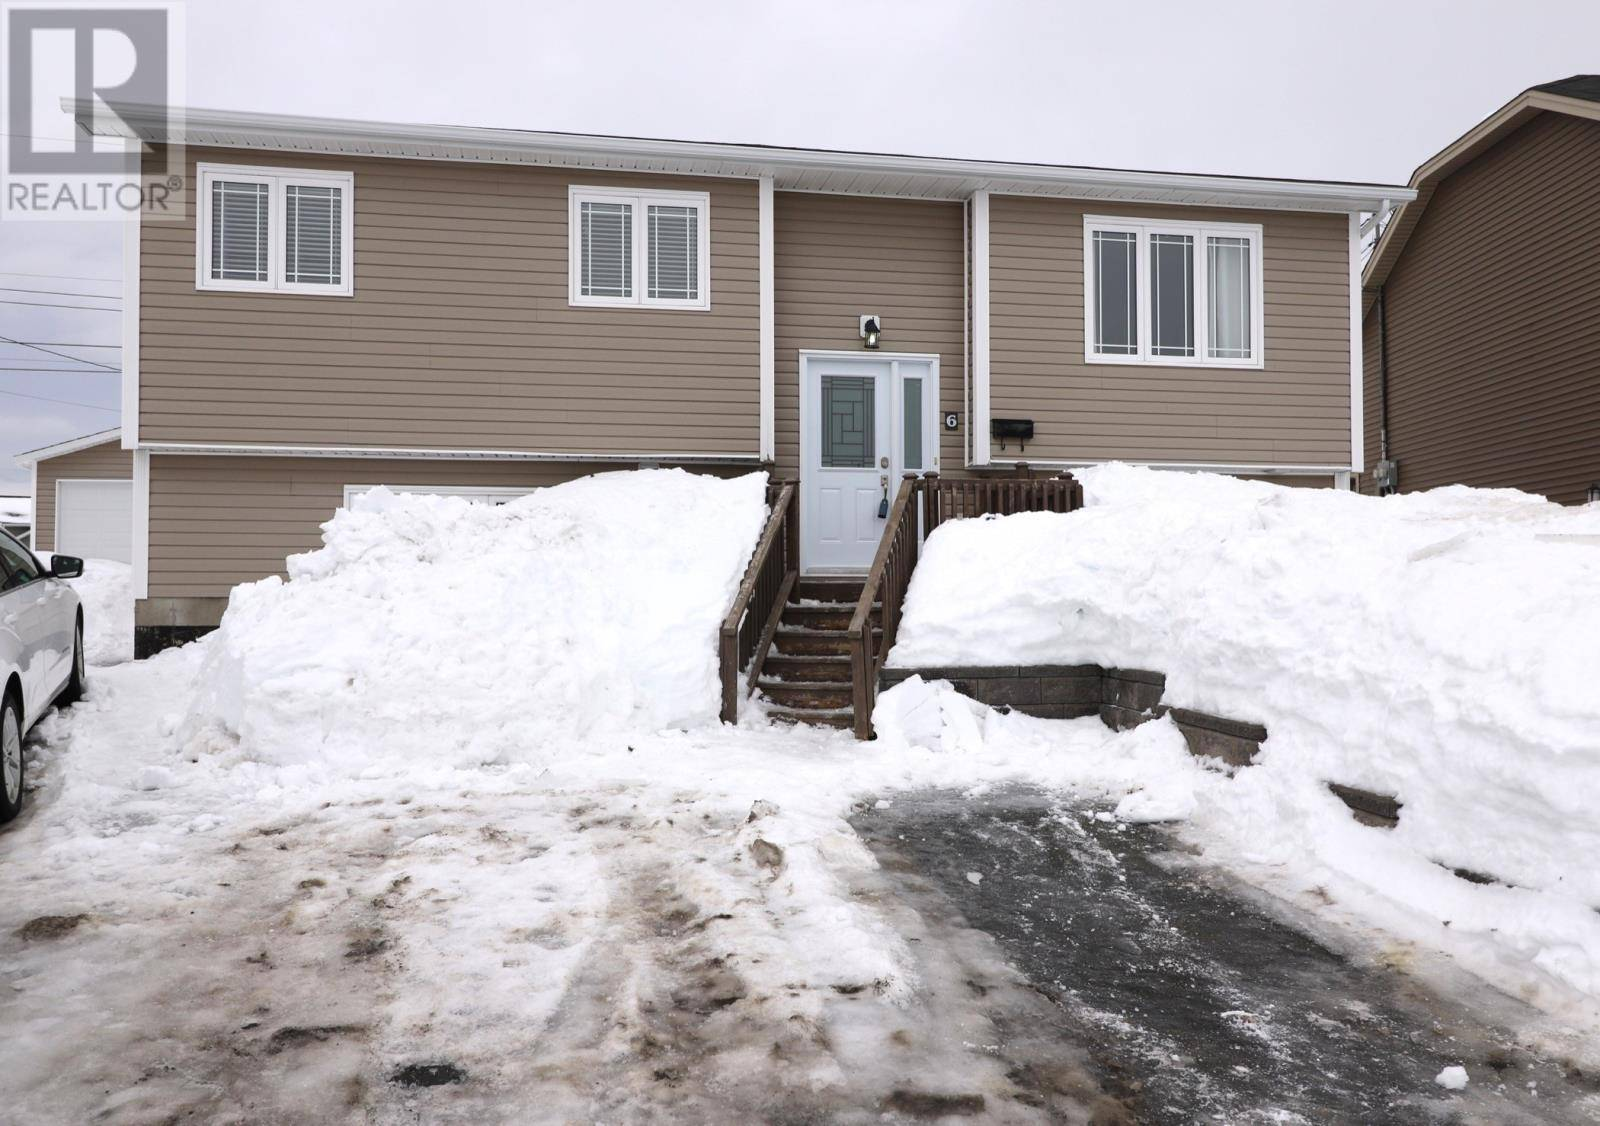 House for sale at 6 Stonefield Pl Mount Pearl Newfoundland - MLS: 1209425